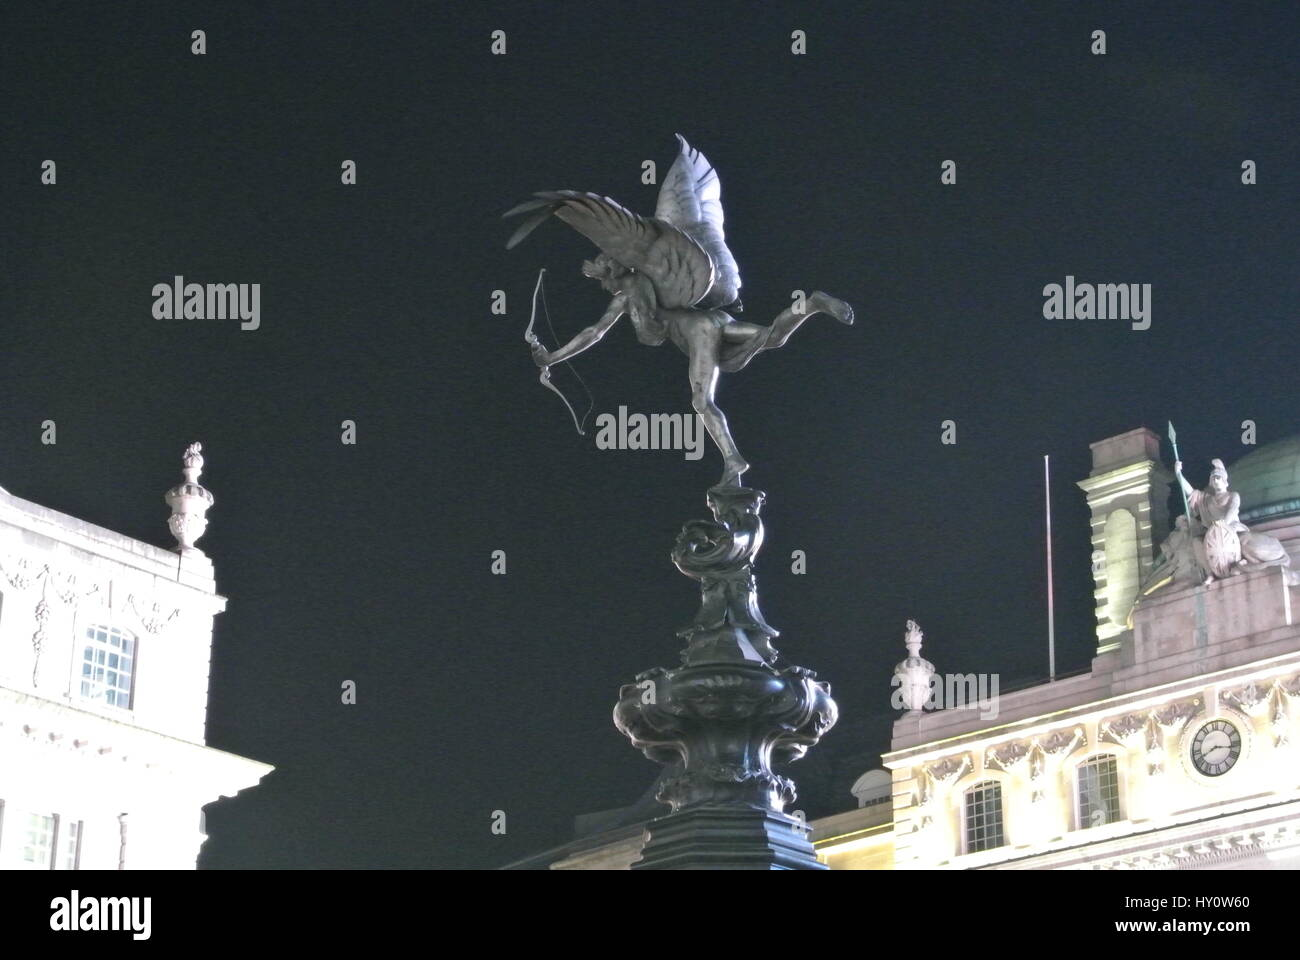 Statue of Eros, on top of Shaftesbury Memorial Fountain,Piccadilly Circus,  London, England - night photo - Stock Image